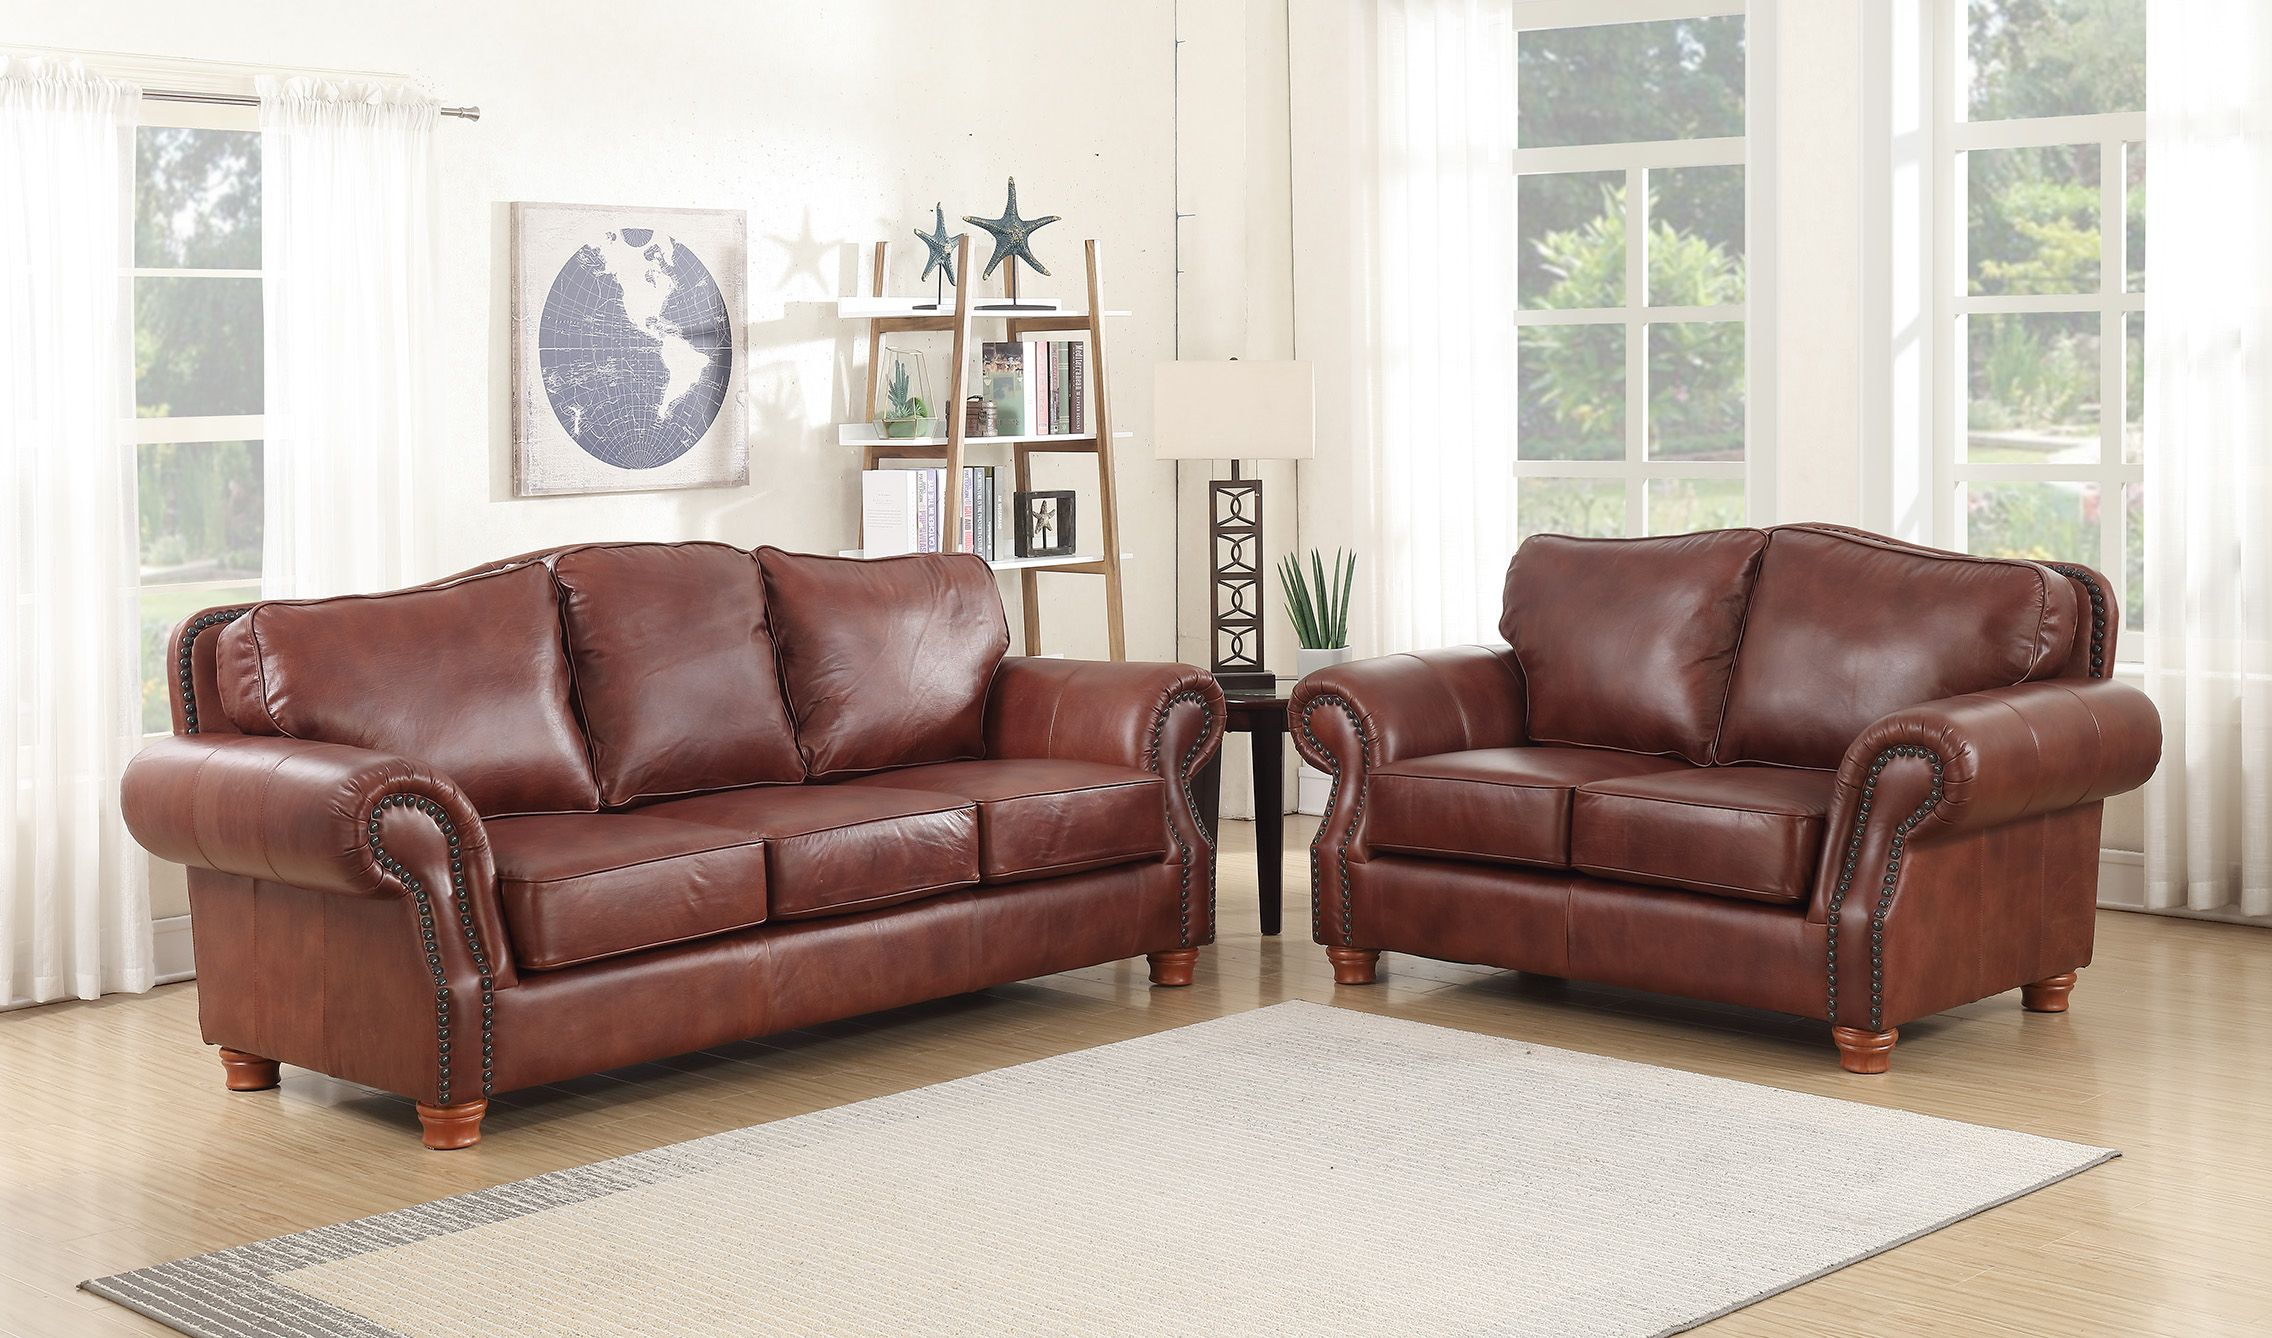 Sensational 6089 Rustic Rust Leather Group Sofa And Loveseat Lacrosse Andrewgaddart Wooden Chair Designs For Living Room Andrewgaddartcom